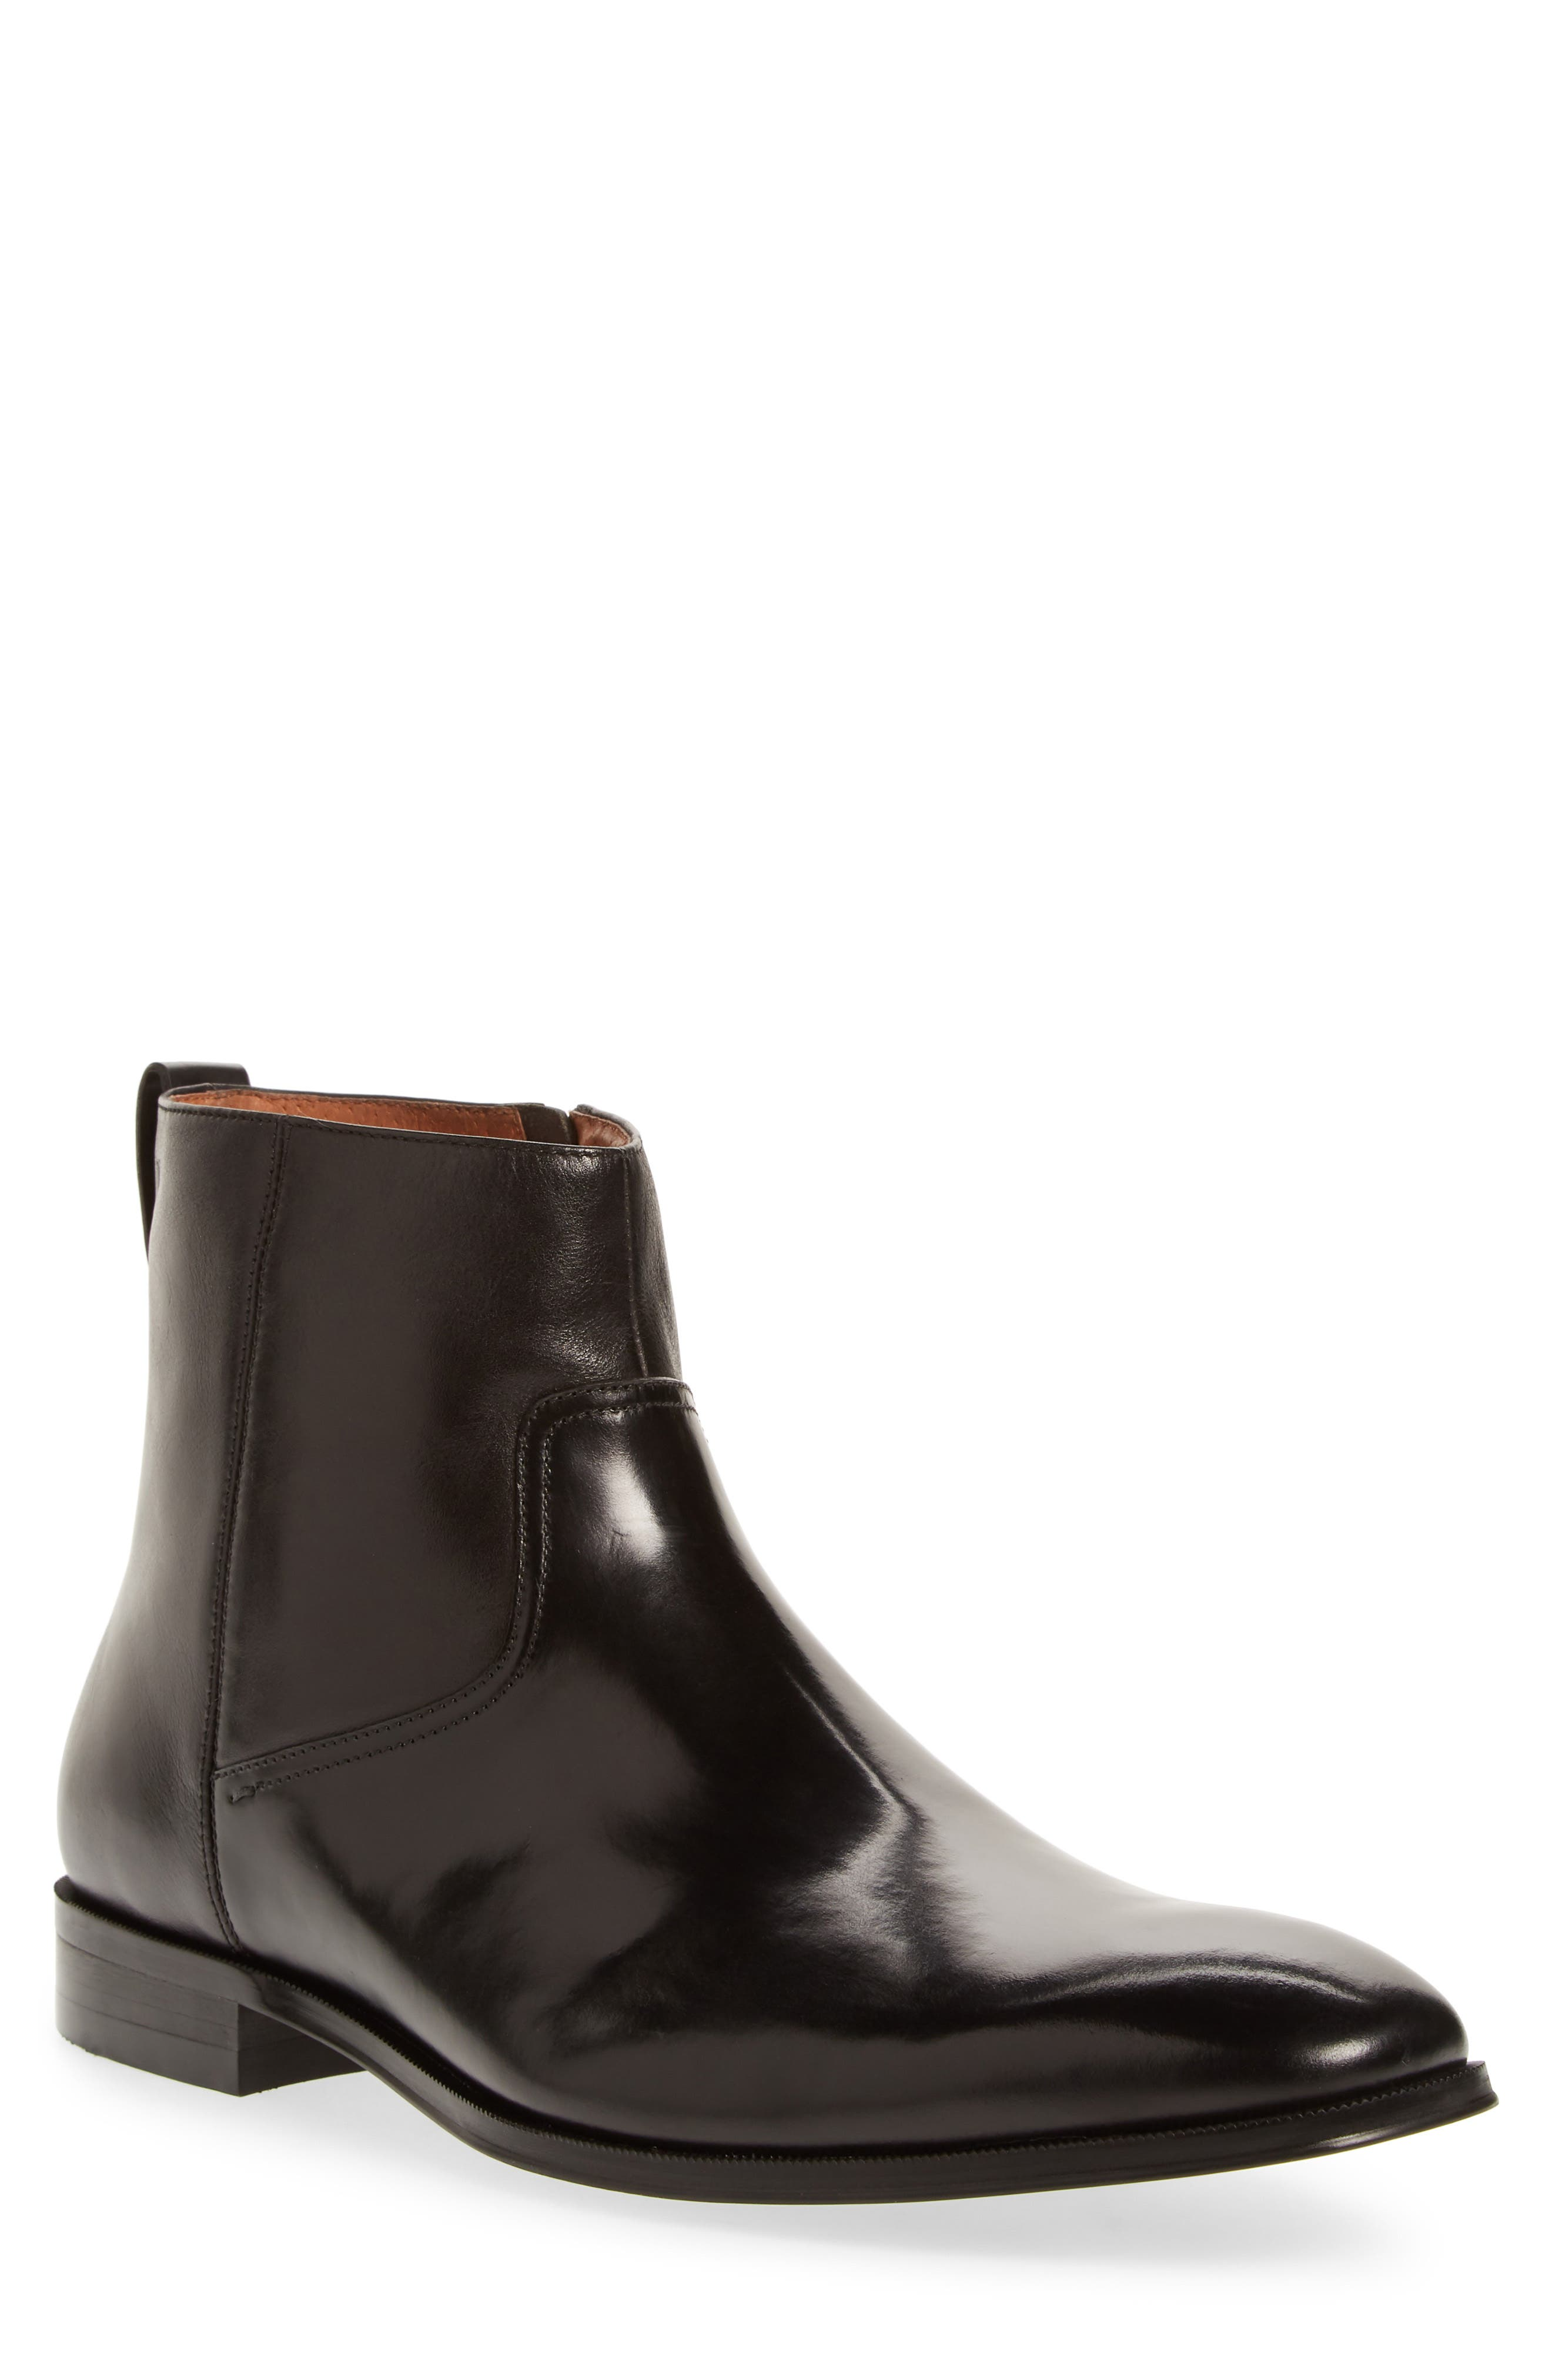 Belfast Mid Zip Boot,                             Main thumbnail 1, color,                             BLACK LEATHER